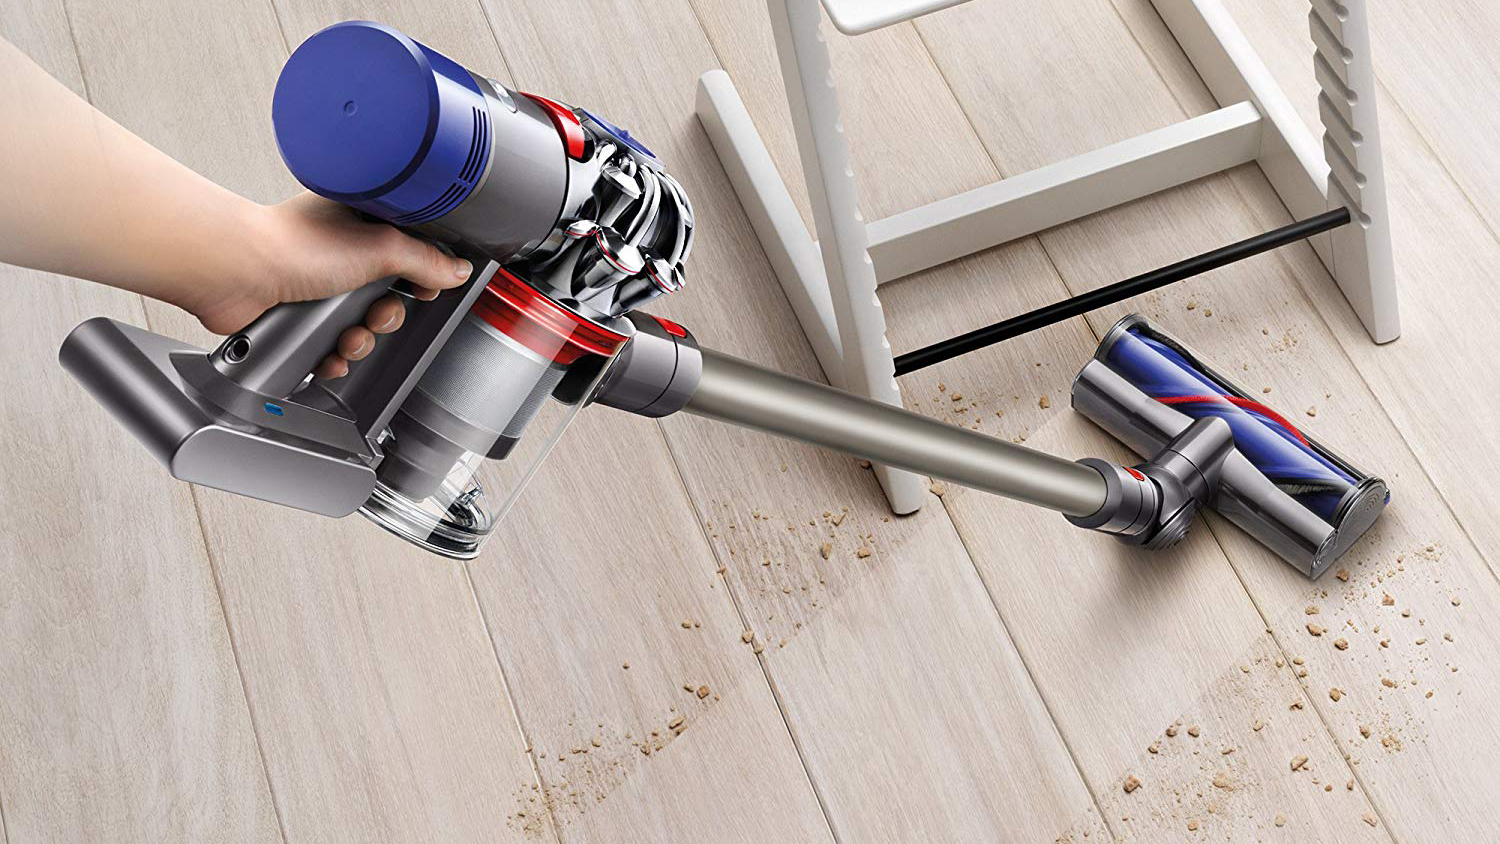 V8 dyson parquet dyson reviews vacuum